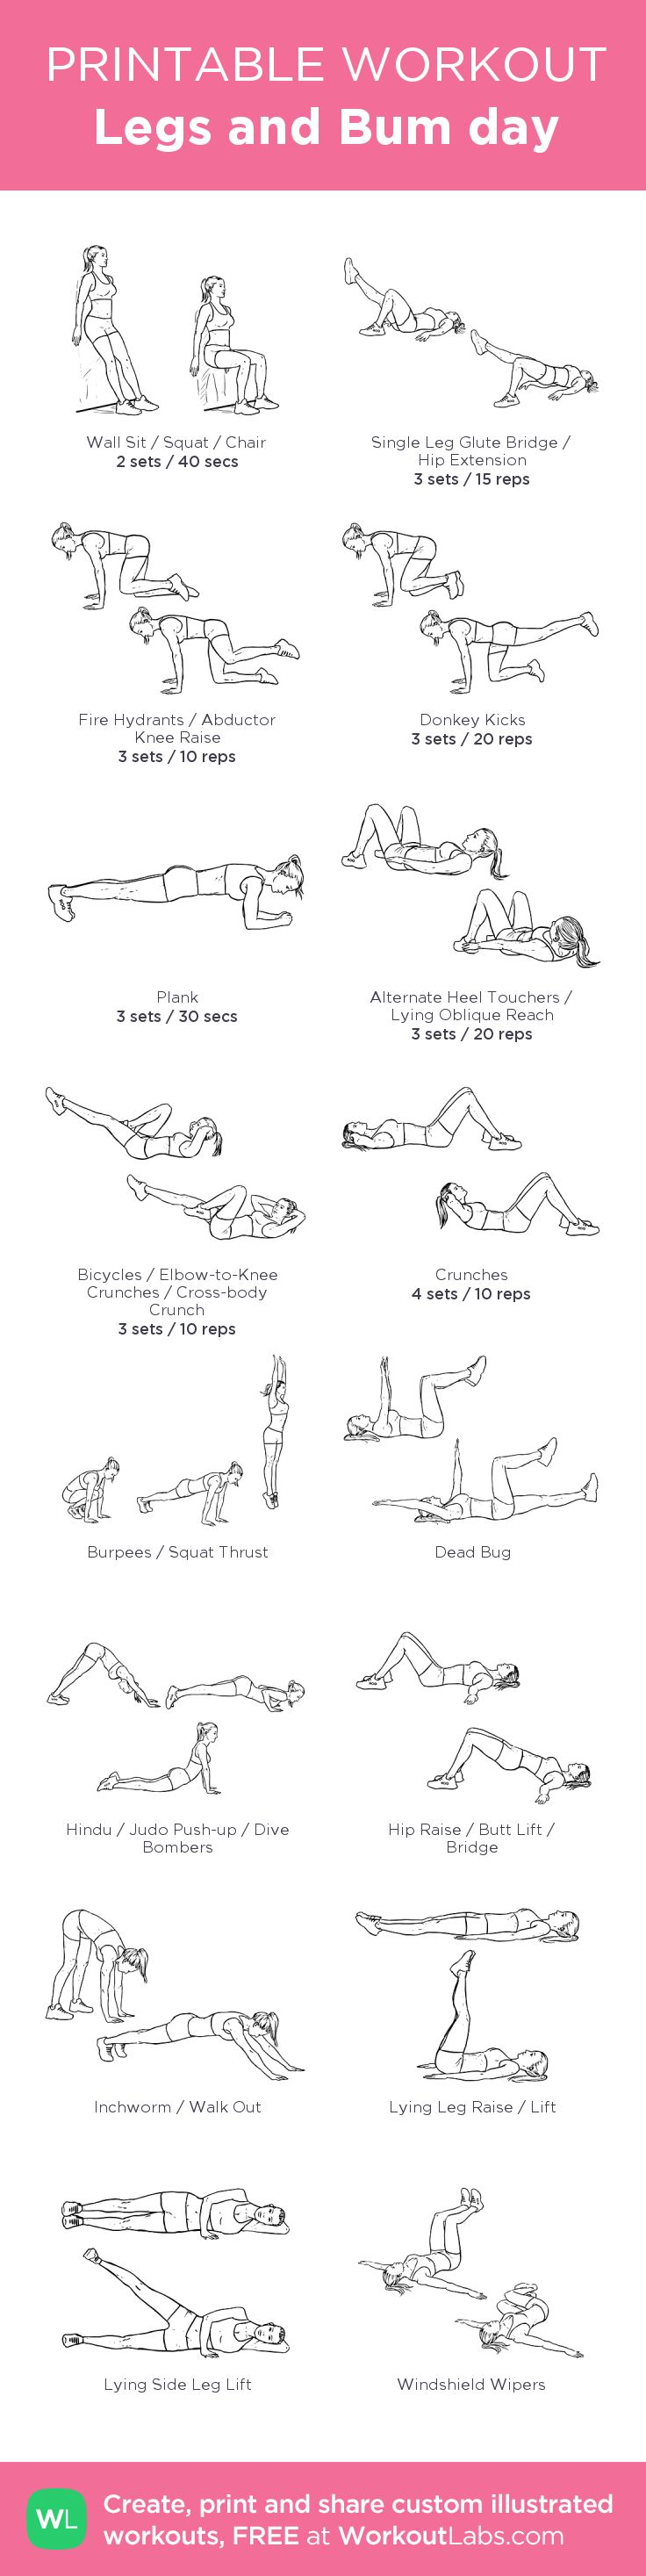 Legs and Bum day: my visual workout created at WorkoutLabs.com • Click through to customize and download as a FREE PDF! #customworkout